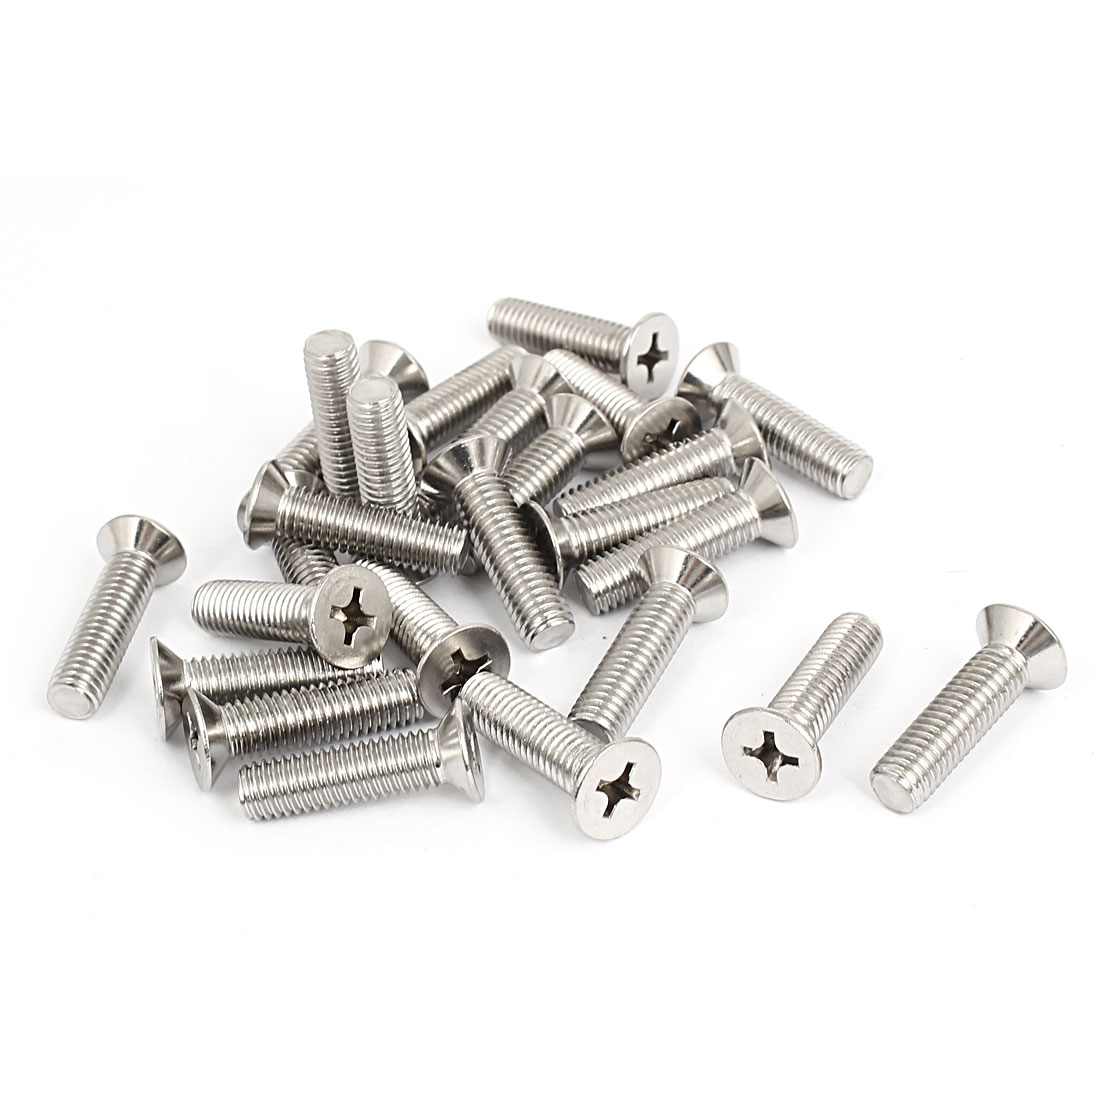 M8x30mm Stainless Steel Countersunk Flat Head Cross Phillips Screw Bolts 25pcs